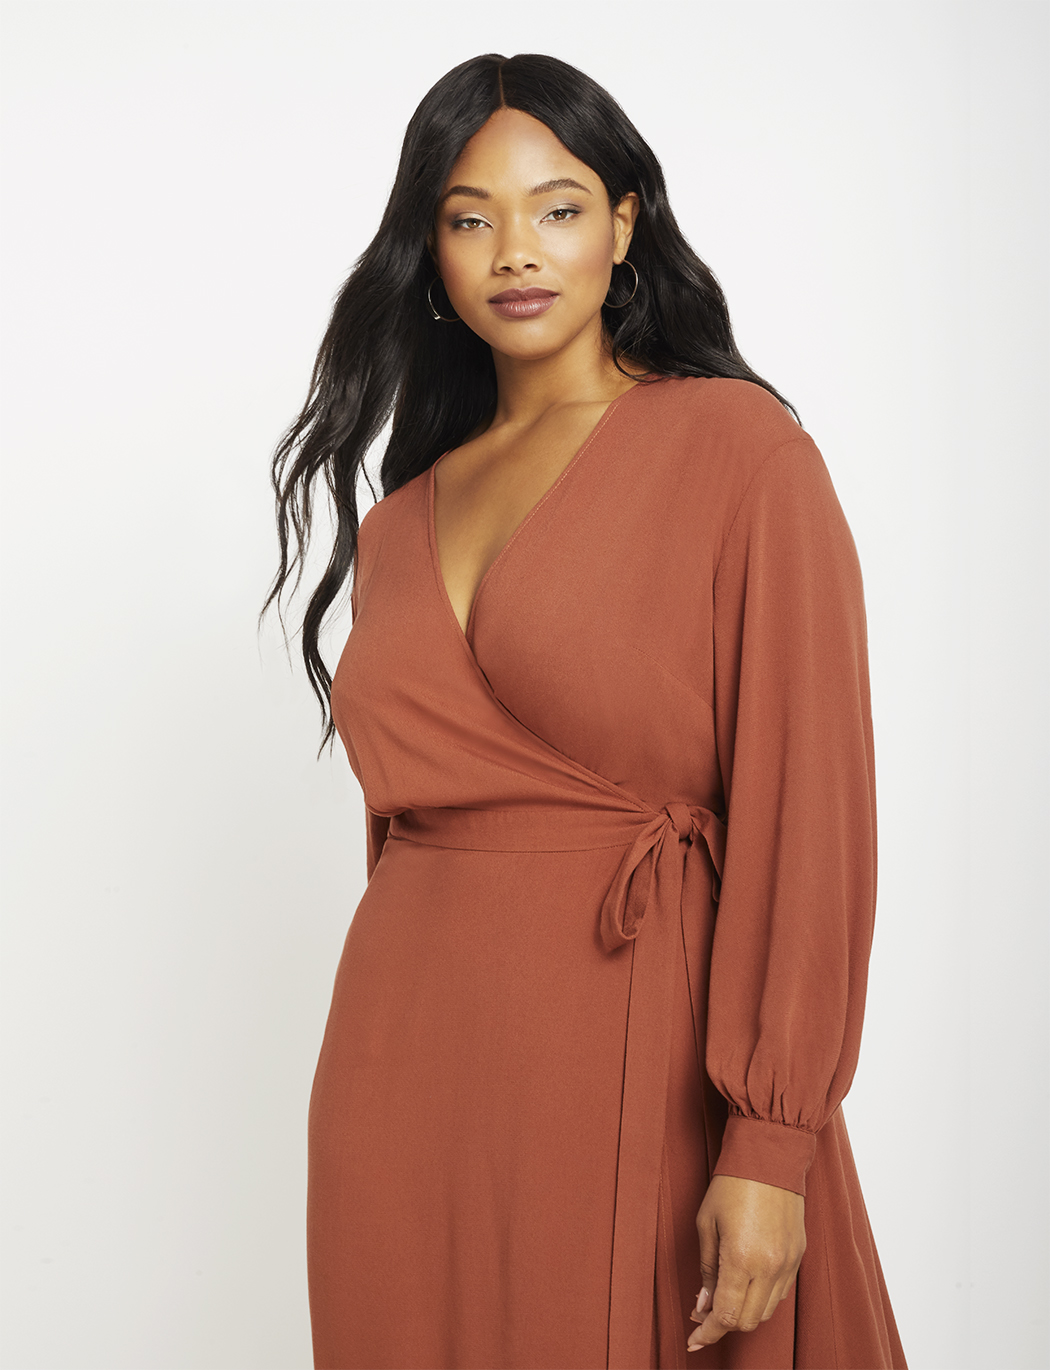 Long Sleeve Wrap Dress with Tie | Women\'s Plus Size Dresses | ELOQUII